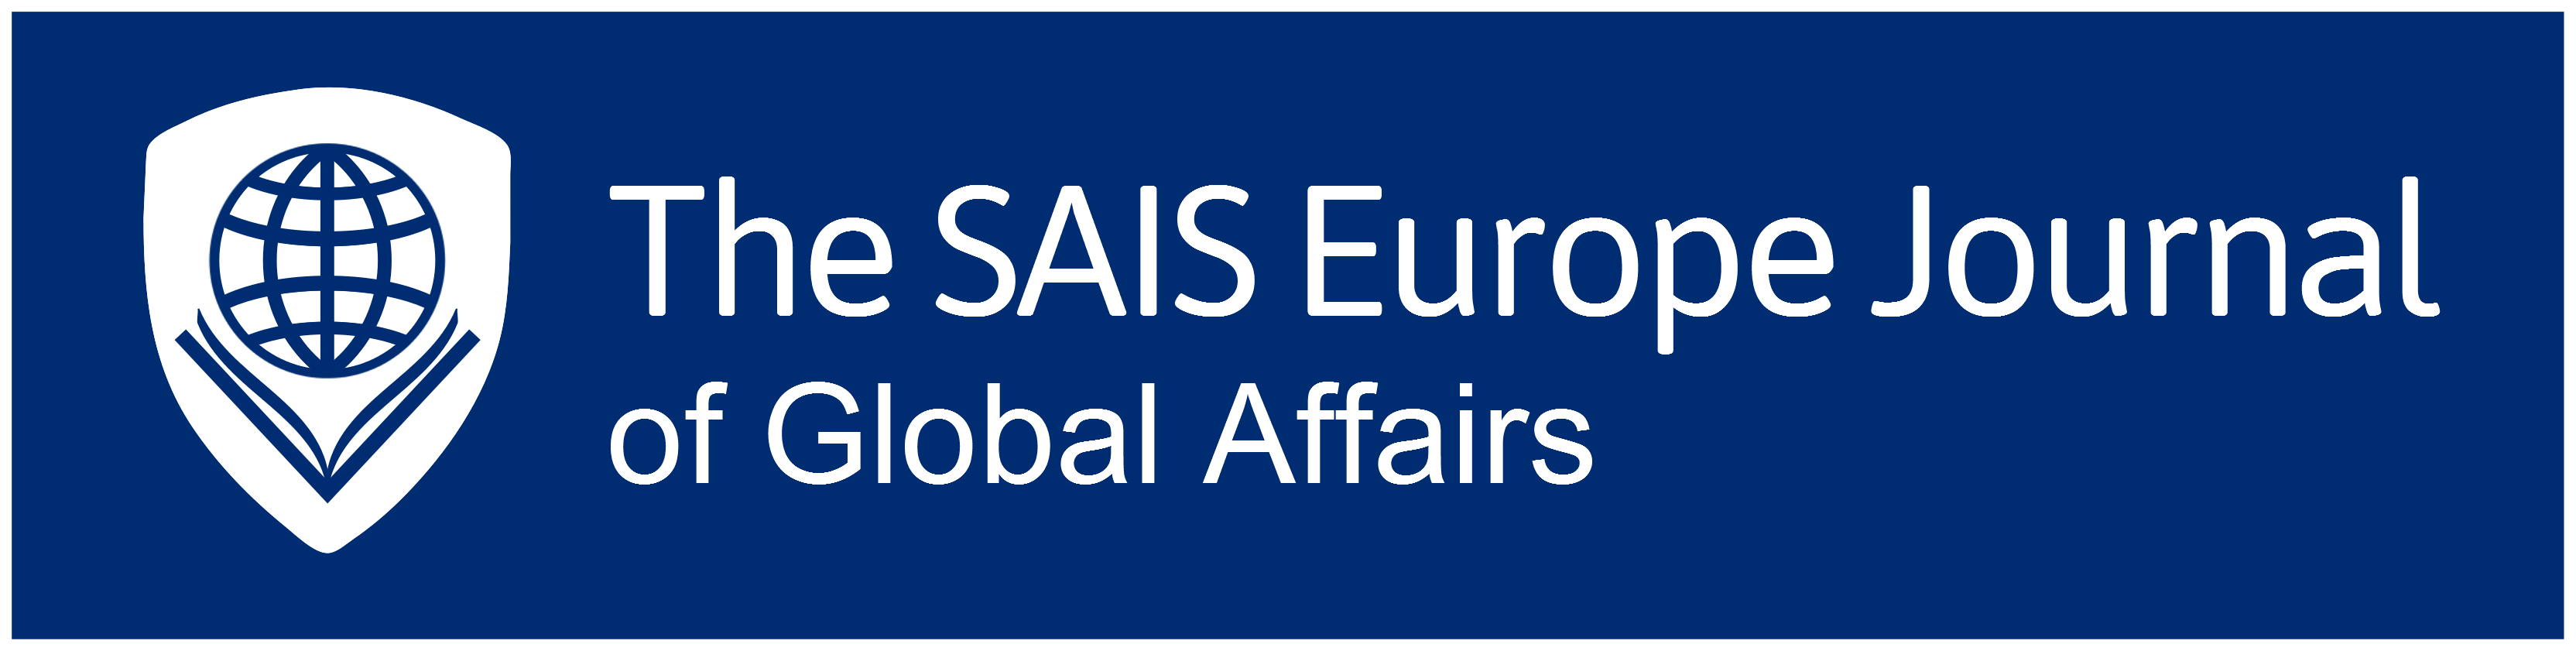 Johns Hopkins SAIS Europe Journal of Global Affairs - call for submissions